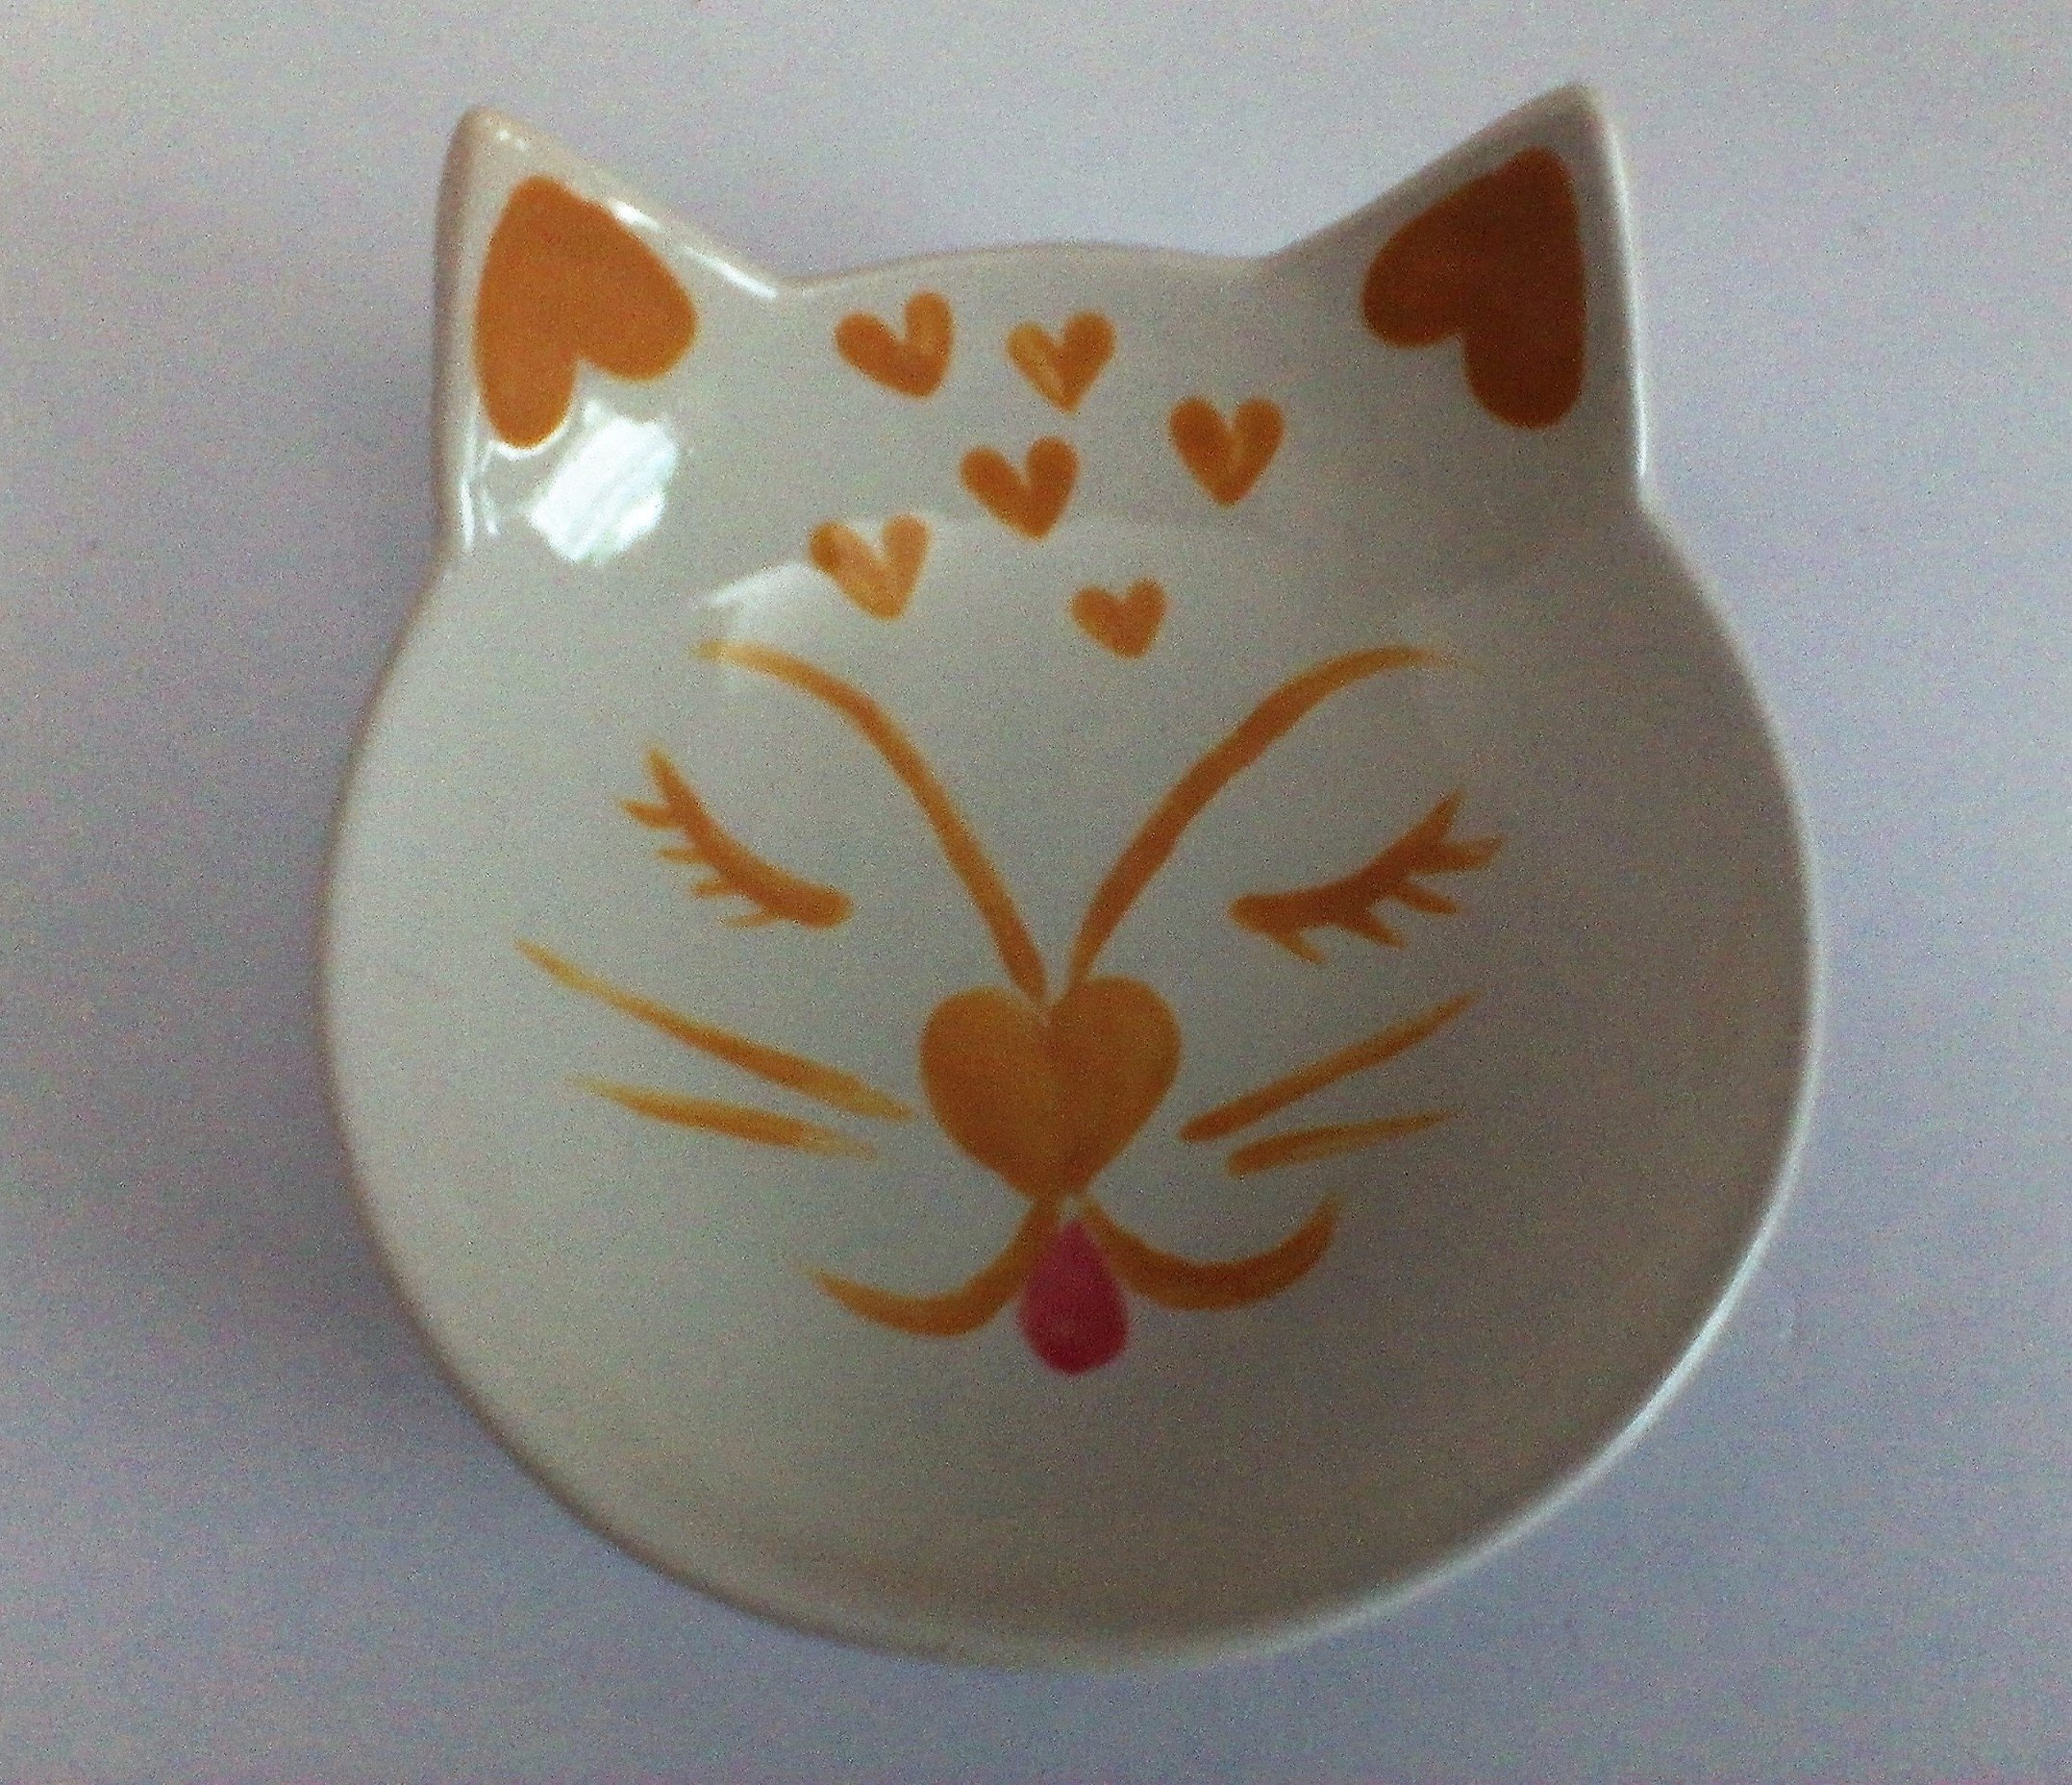 A happy cat water or feeding bowl in brown and white